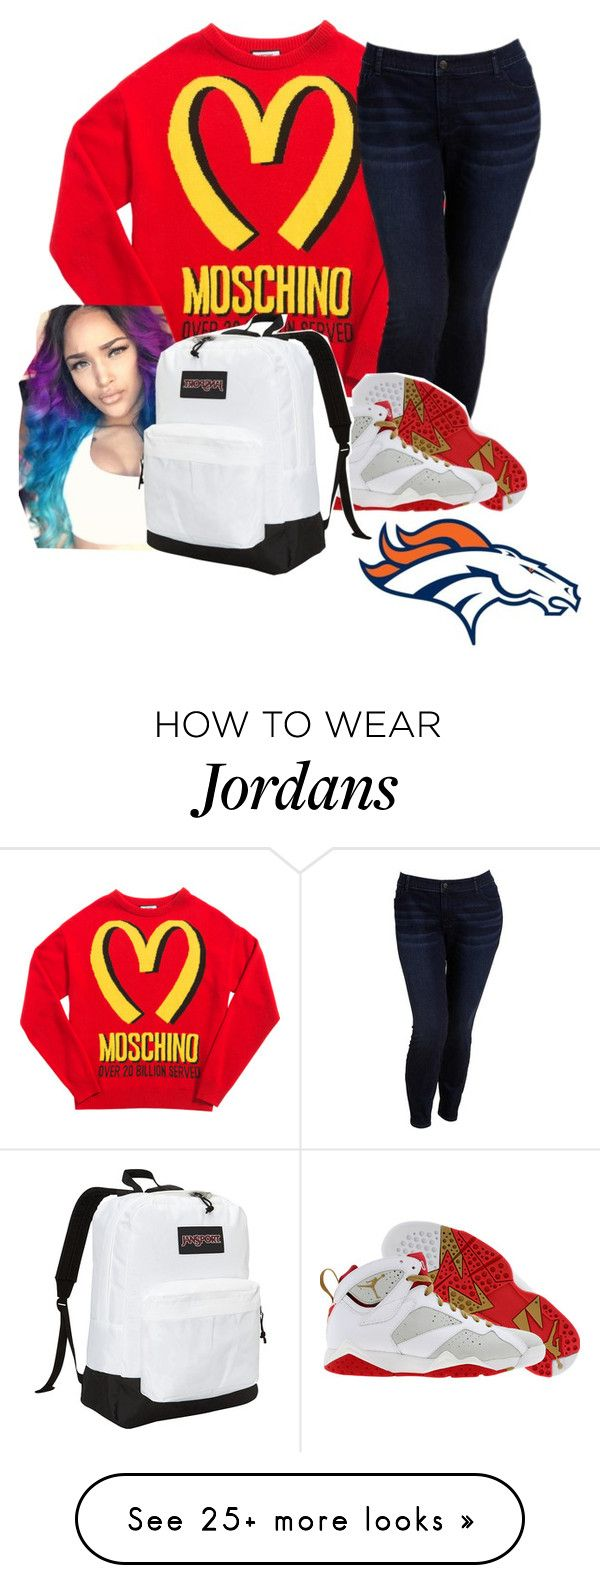 """BRONCOS"" by jtia on Polyvore featuring Moschino, Old Navy, Retrò, JanSport, women's clothing, women, female, woman, misses and juniors"